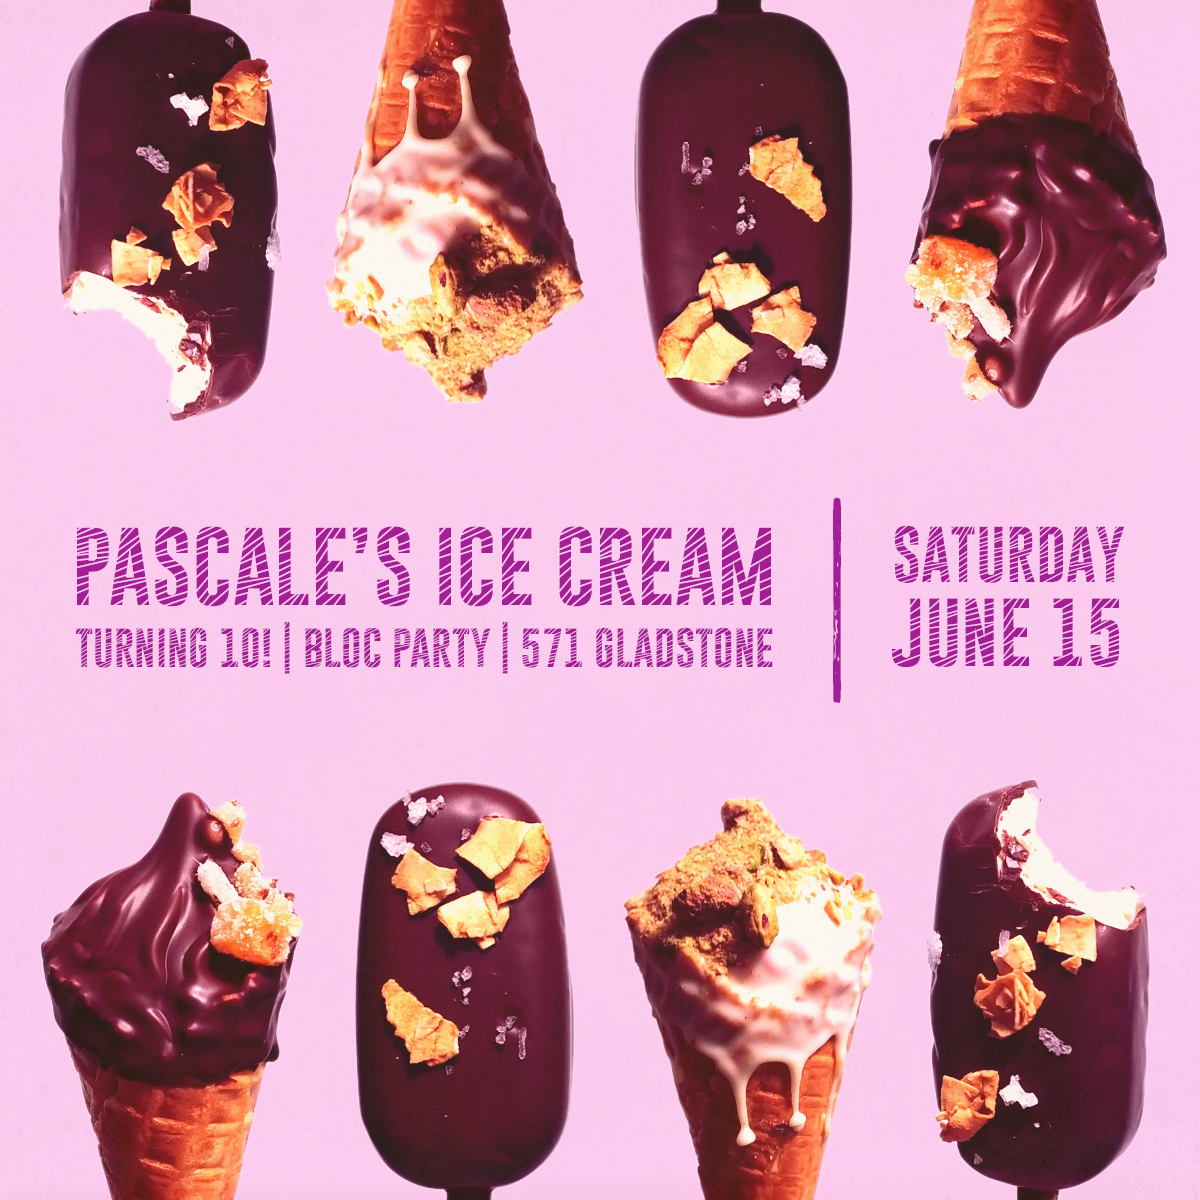 Pascale's party, Saturday June 15th